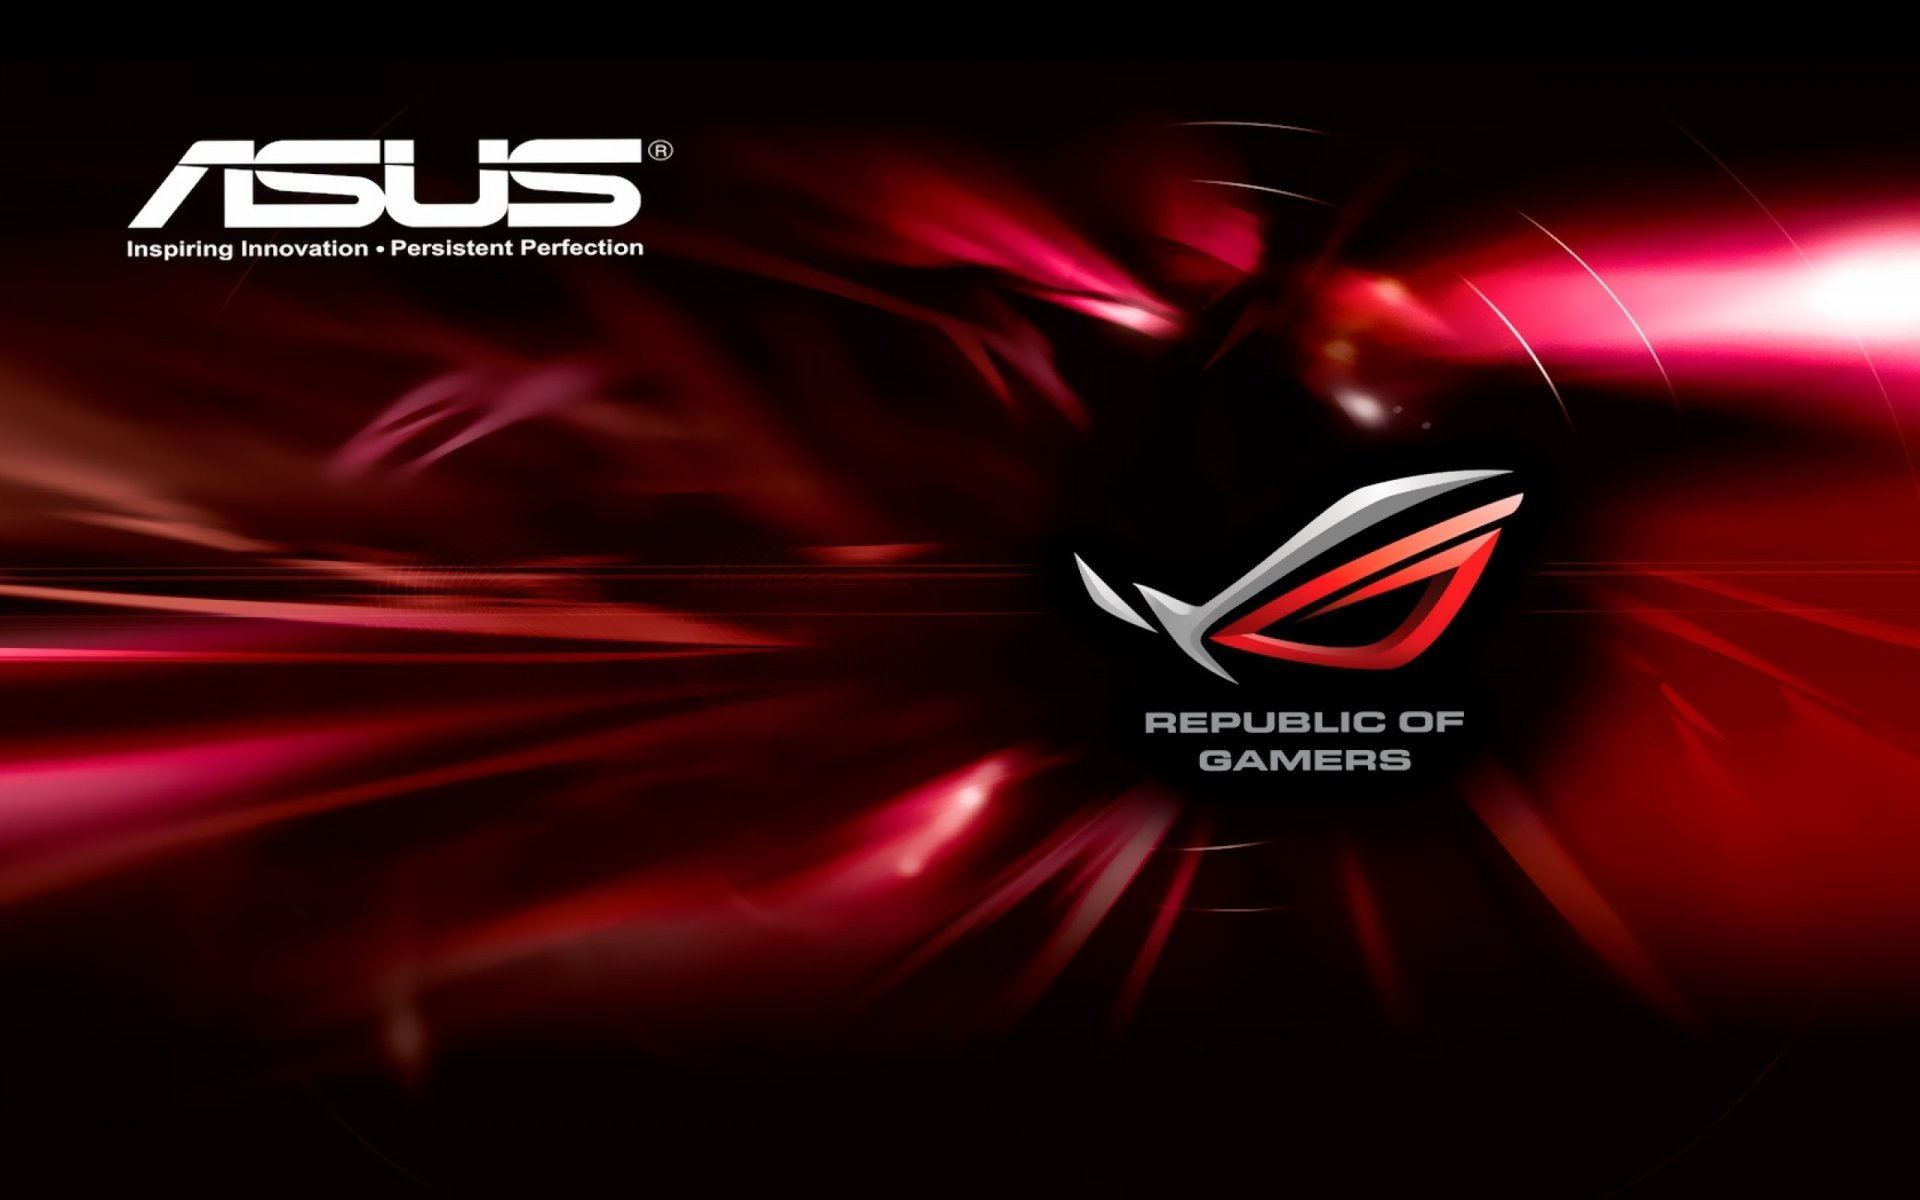 Asus hd wallpaper background image 1920x1200 id - Asus x series wallpaper hd ...